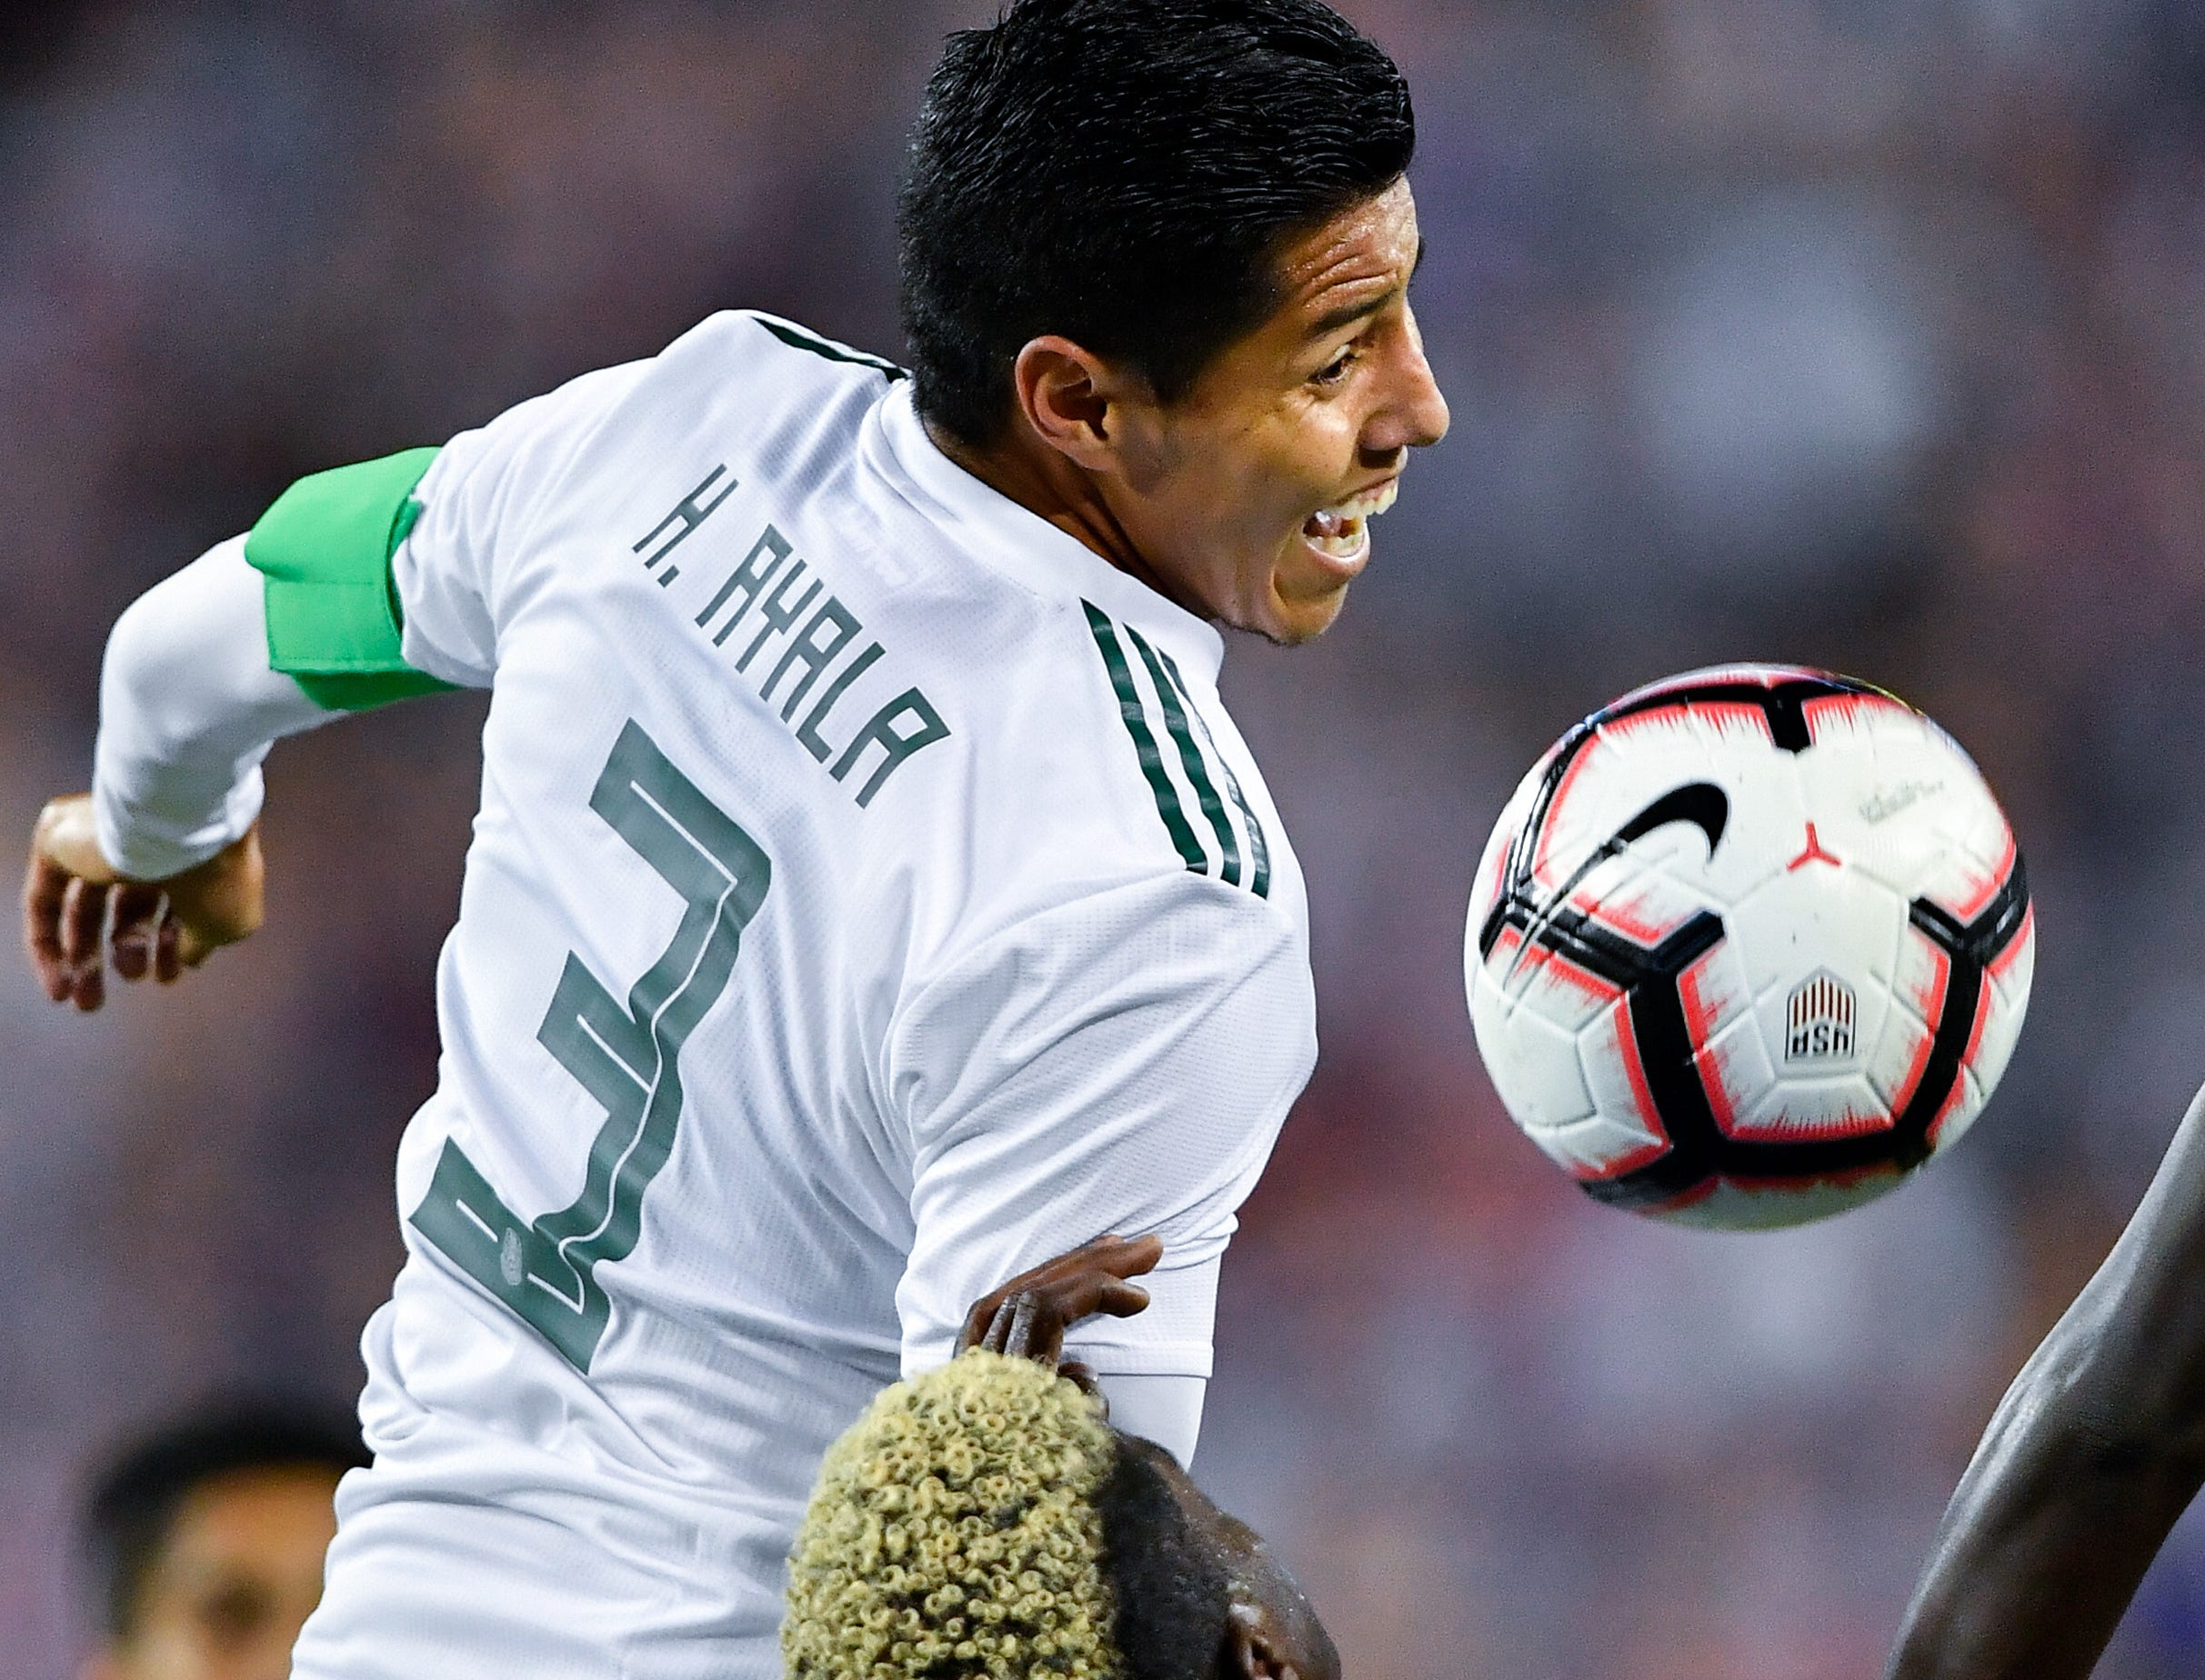 Mexico defender Hugo Ayala (3) battles for the ball with USA forward Gyasi Zardes (9) during the first half at Nissan Stadium in Nashville, Tenn., Tuesday, Sept. 11, 2018.